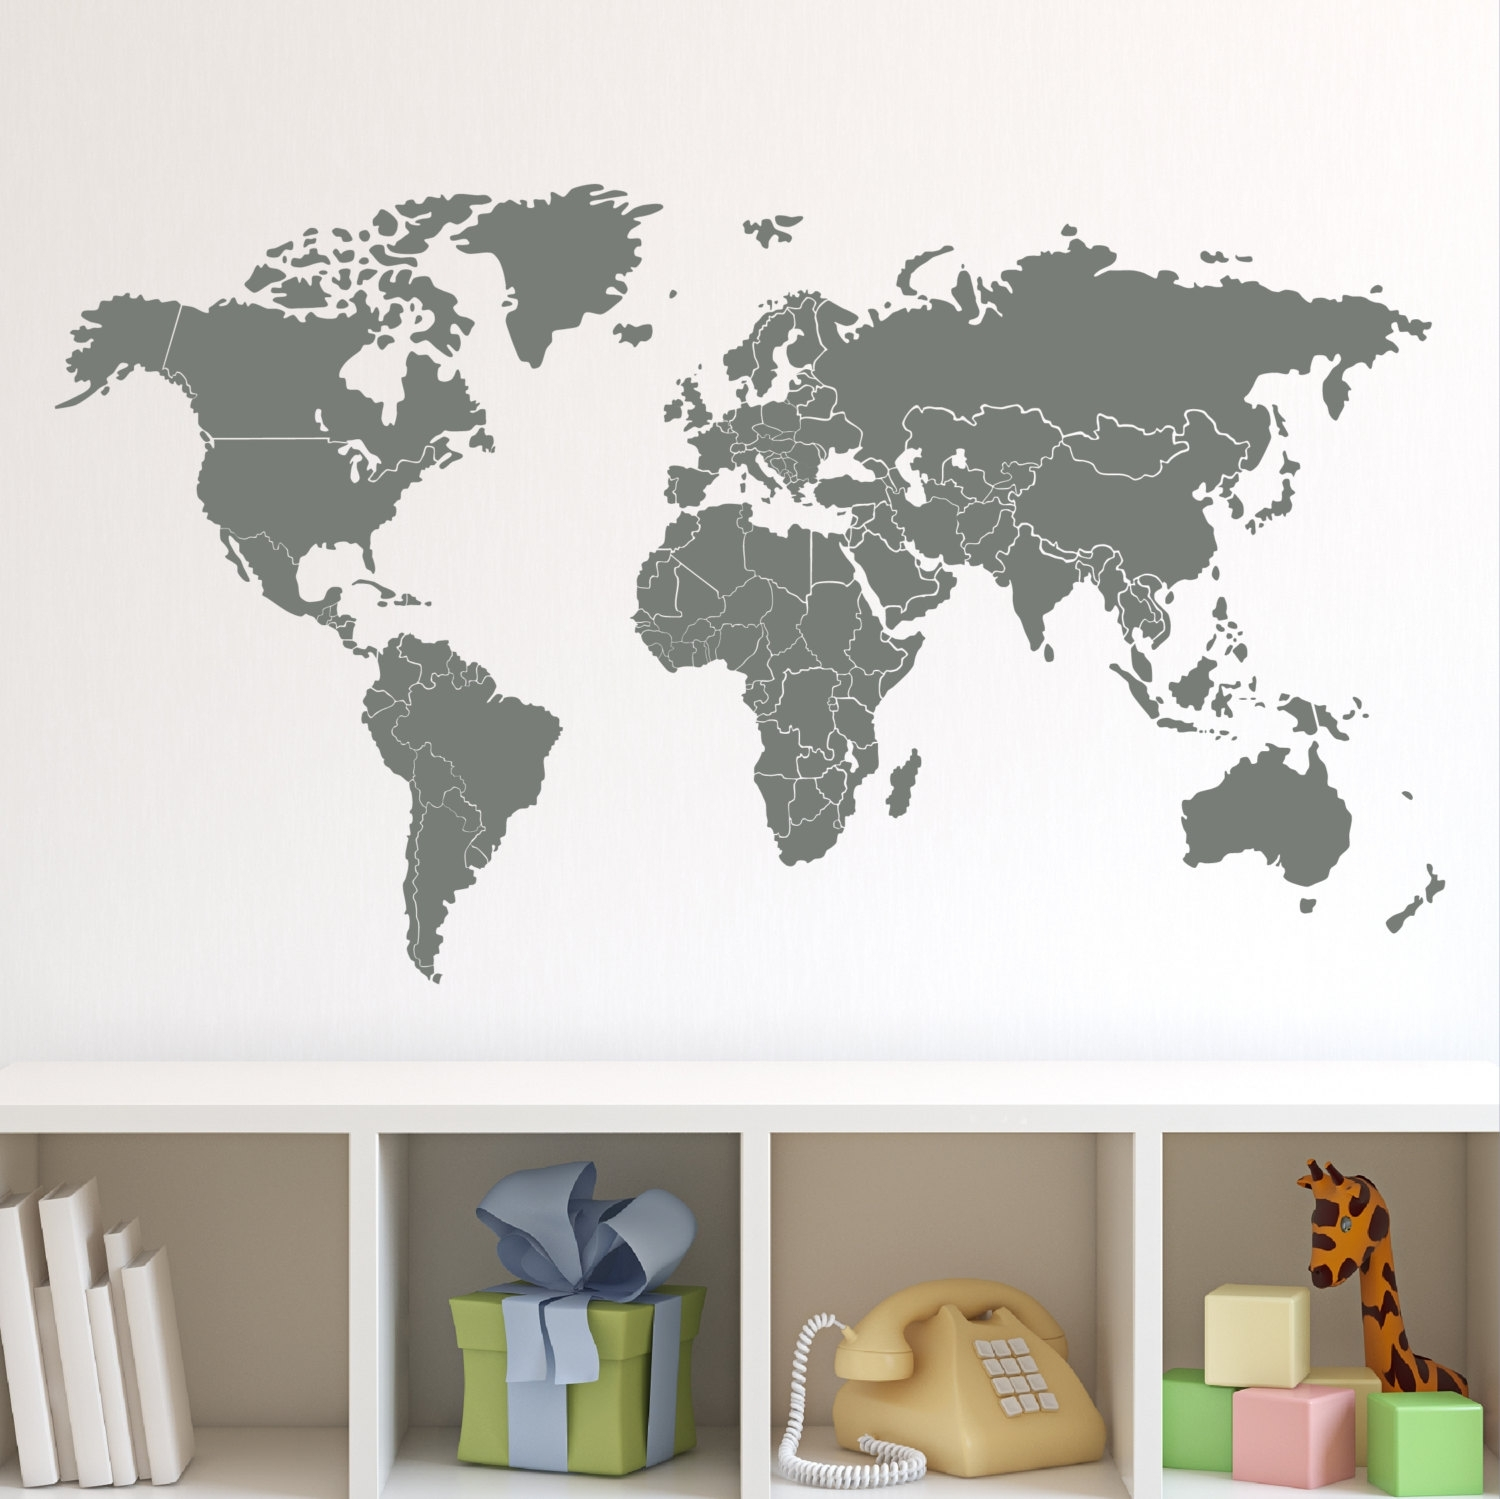 Nice World Map Wall Decals – Home Design #940 With Regard To Current Vinyl Wall Art World Map (View 10 of 20)